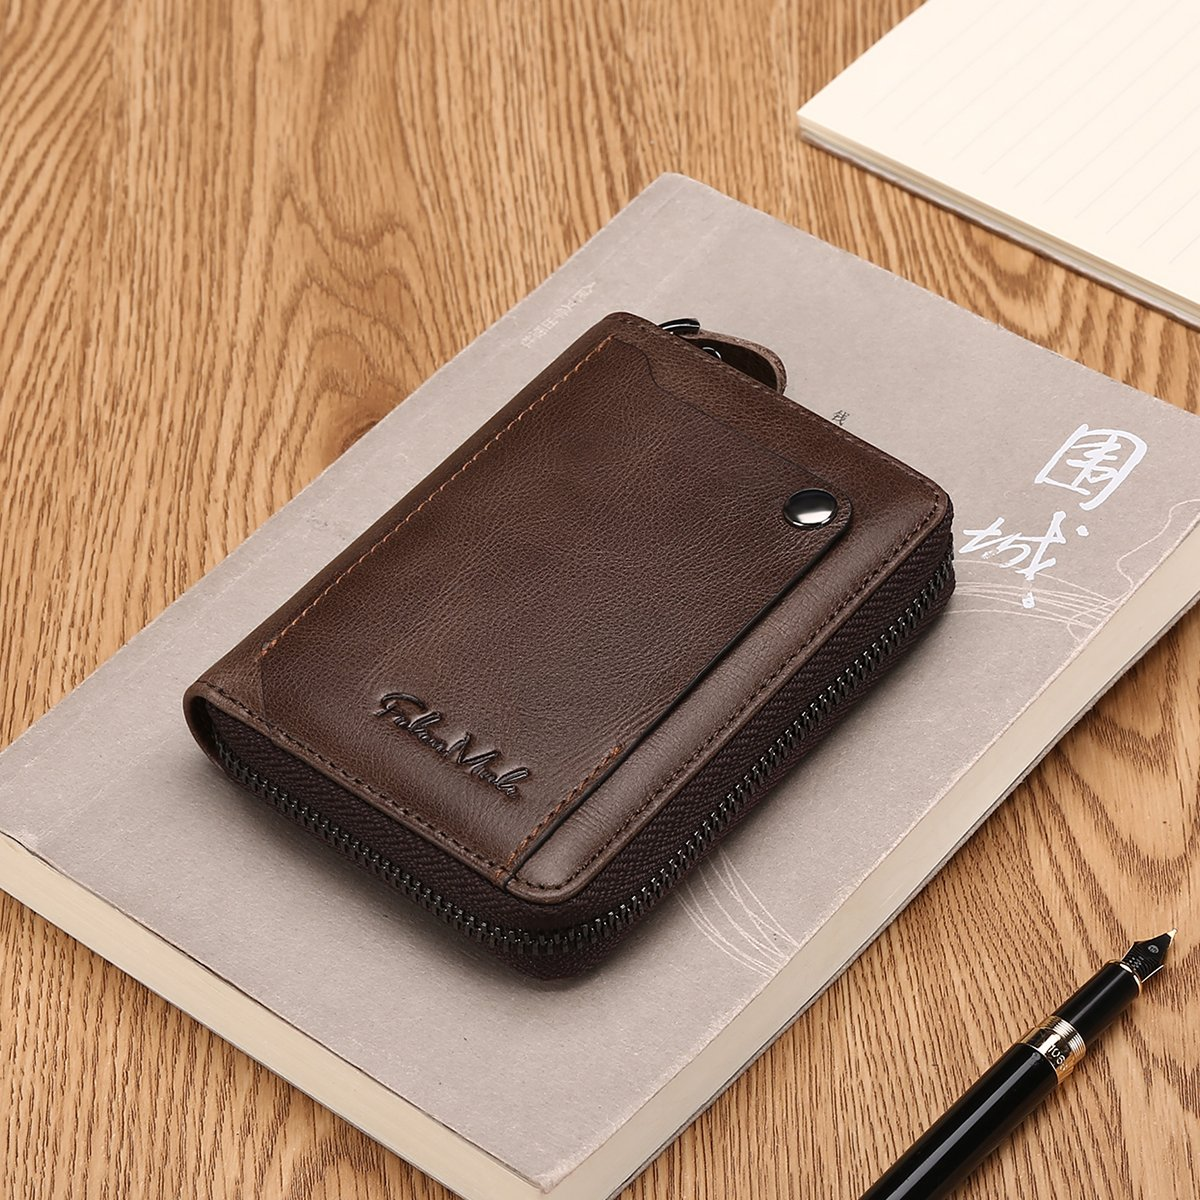 Slim Bifold RFID Blocking Men Wallet Leather Front Pocket Compact Design Zipper Closure Minimalist by Falan Mule (Image #4)